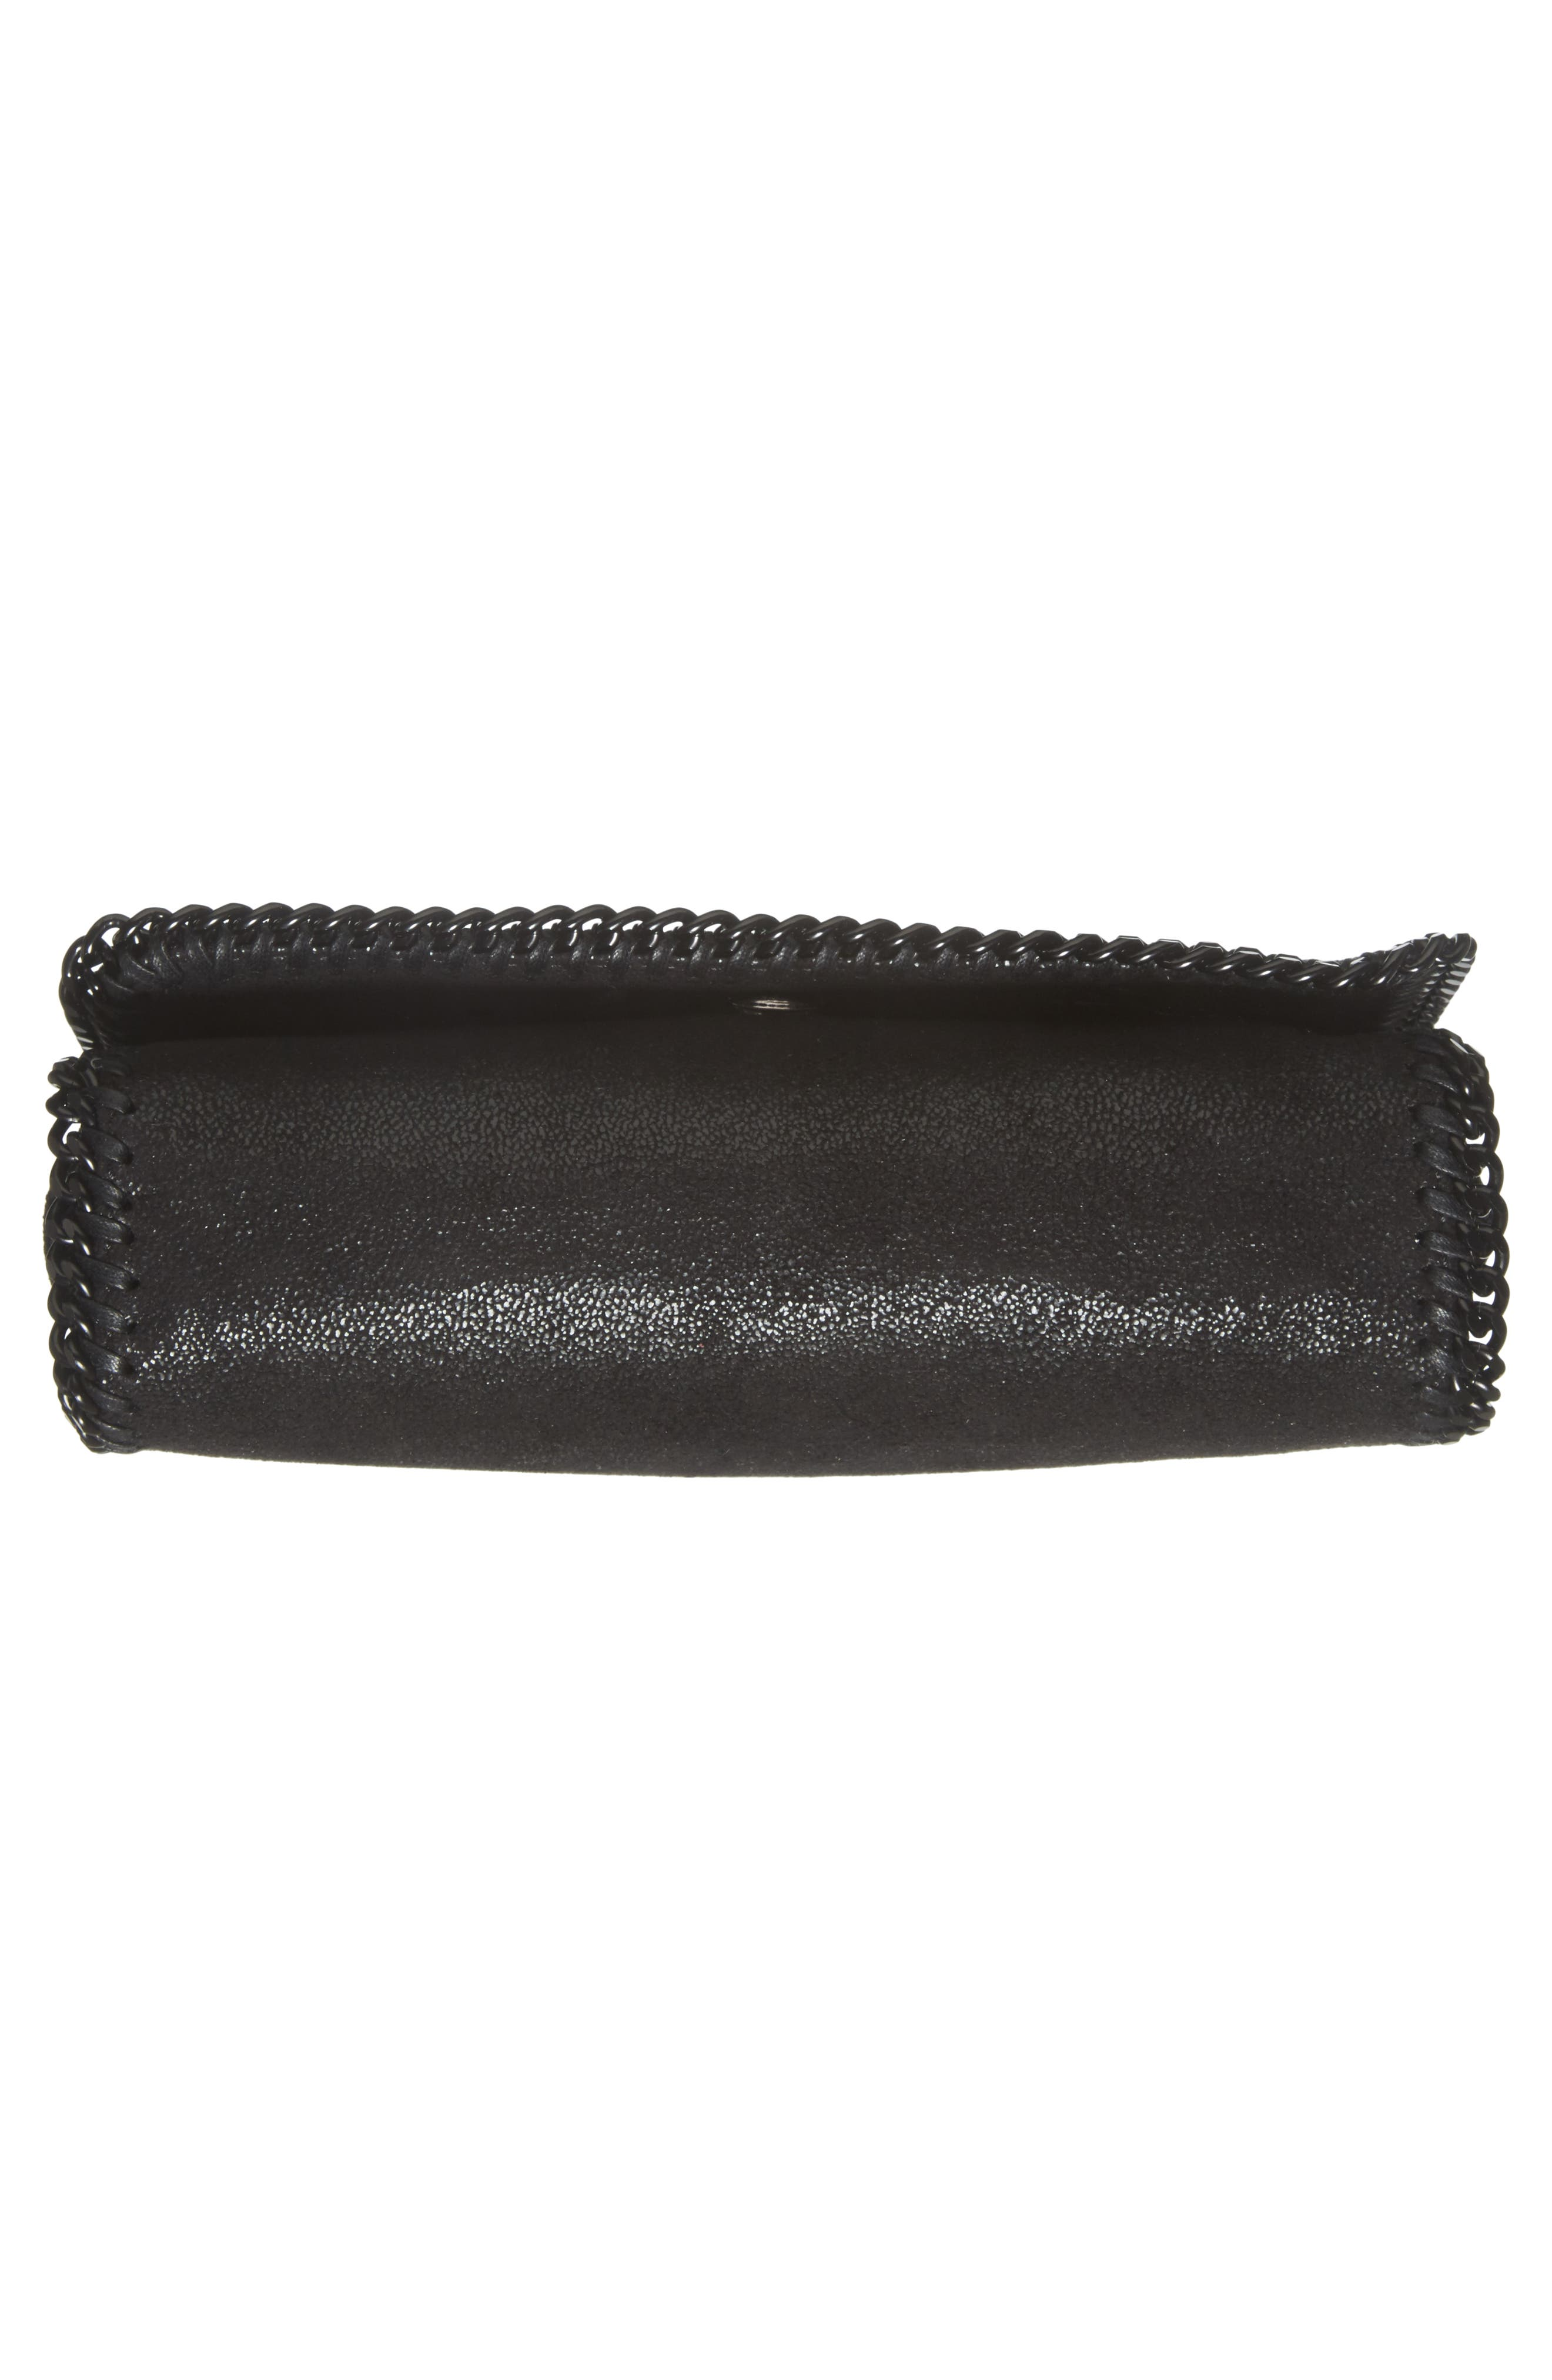 STELLA MCCARTNEY, Falabella Shaggy Deer Faux Leather Clutch, Alternate thumbnail 6, color, BLACK OUT